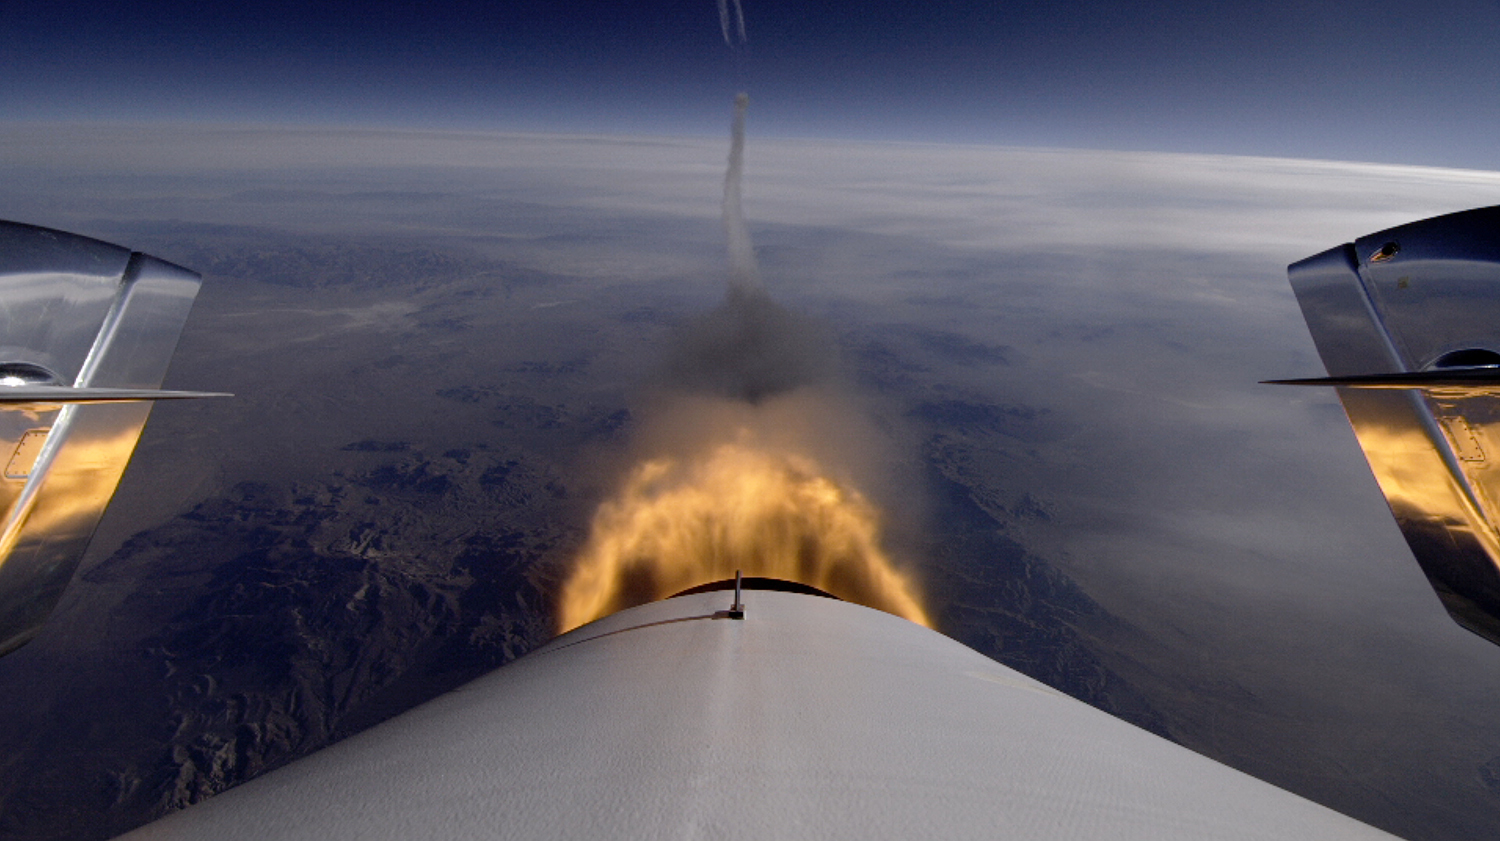 SpaceShipTwo ignites its engine to begin its third supersonic test flight. Photo Credit: Virgin Galactic.